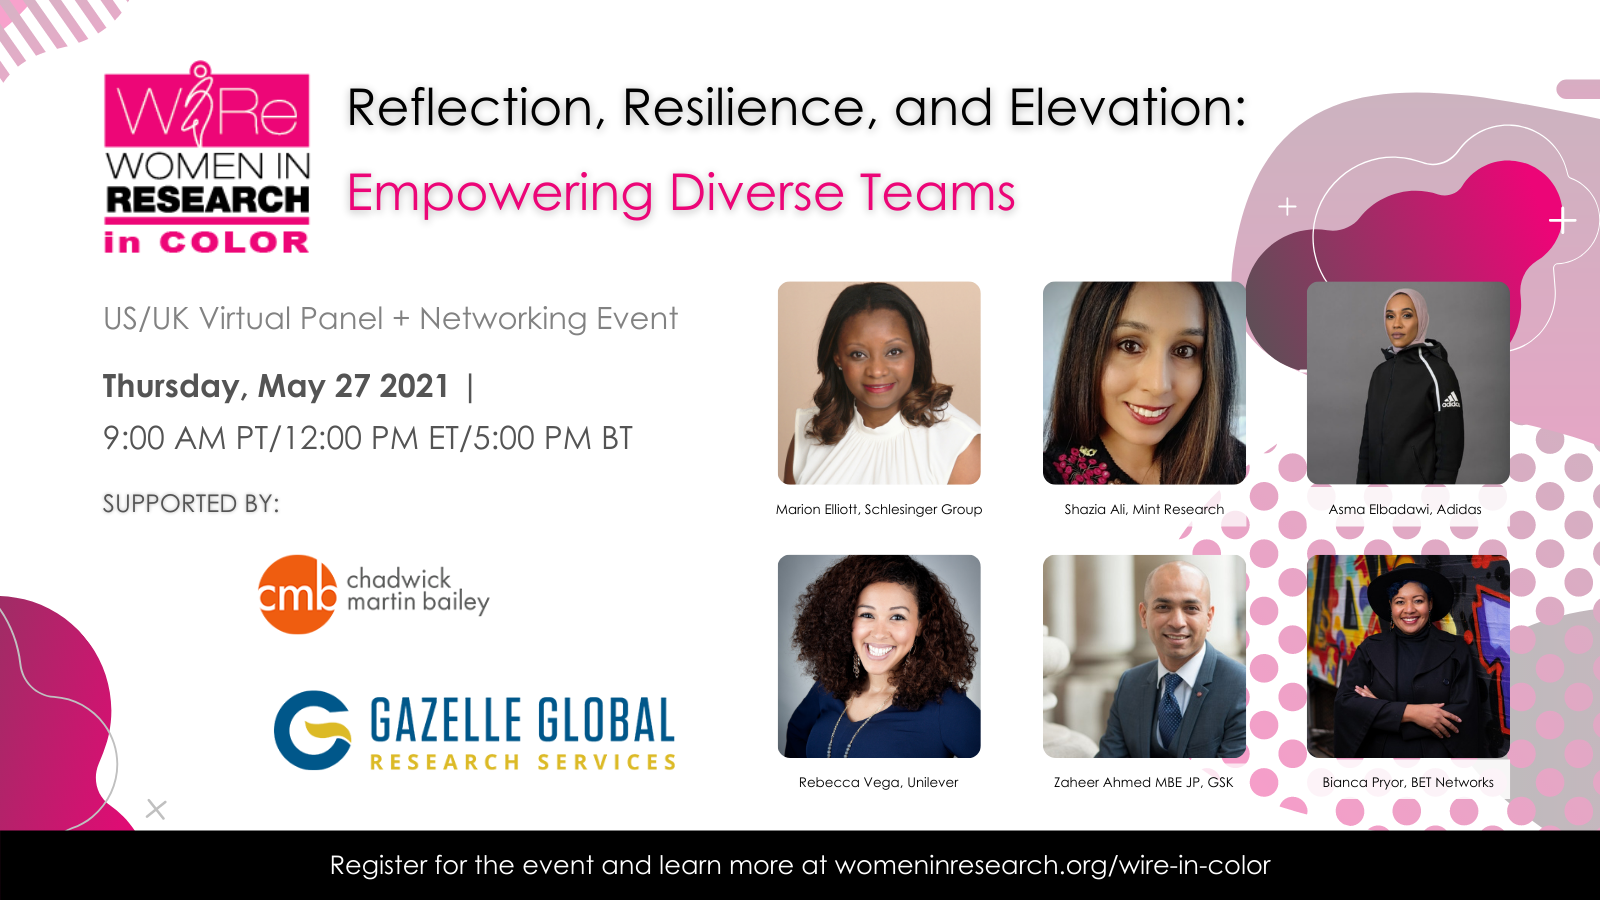 Reflection, Resilience, and Elevation: Empowering Diverse Teams